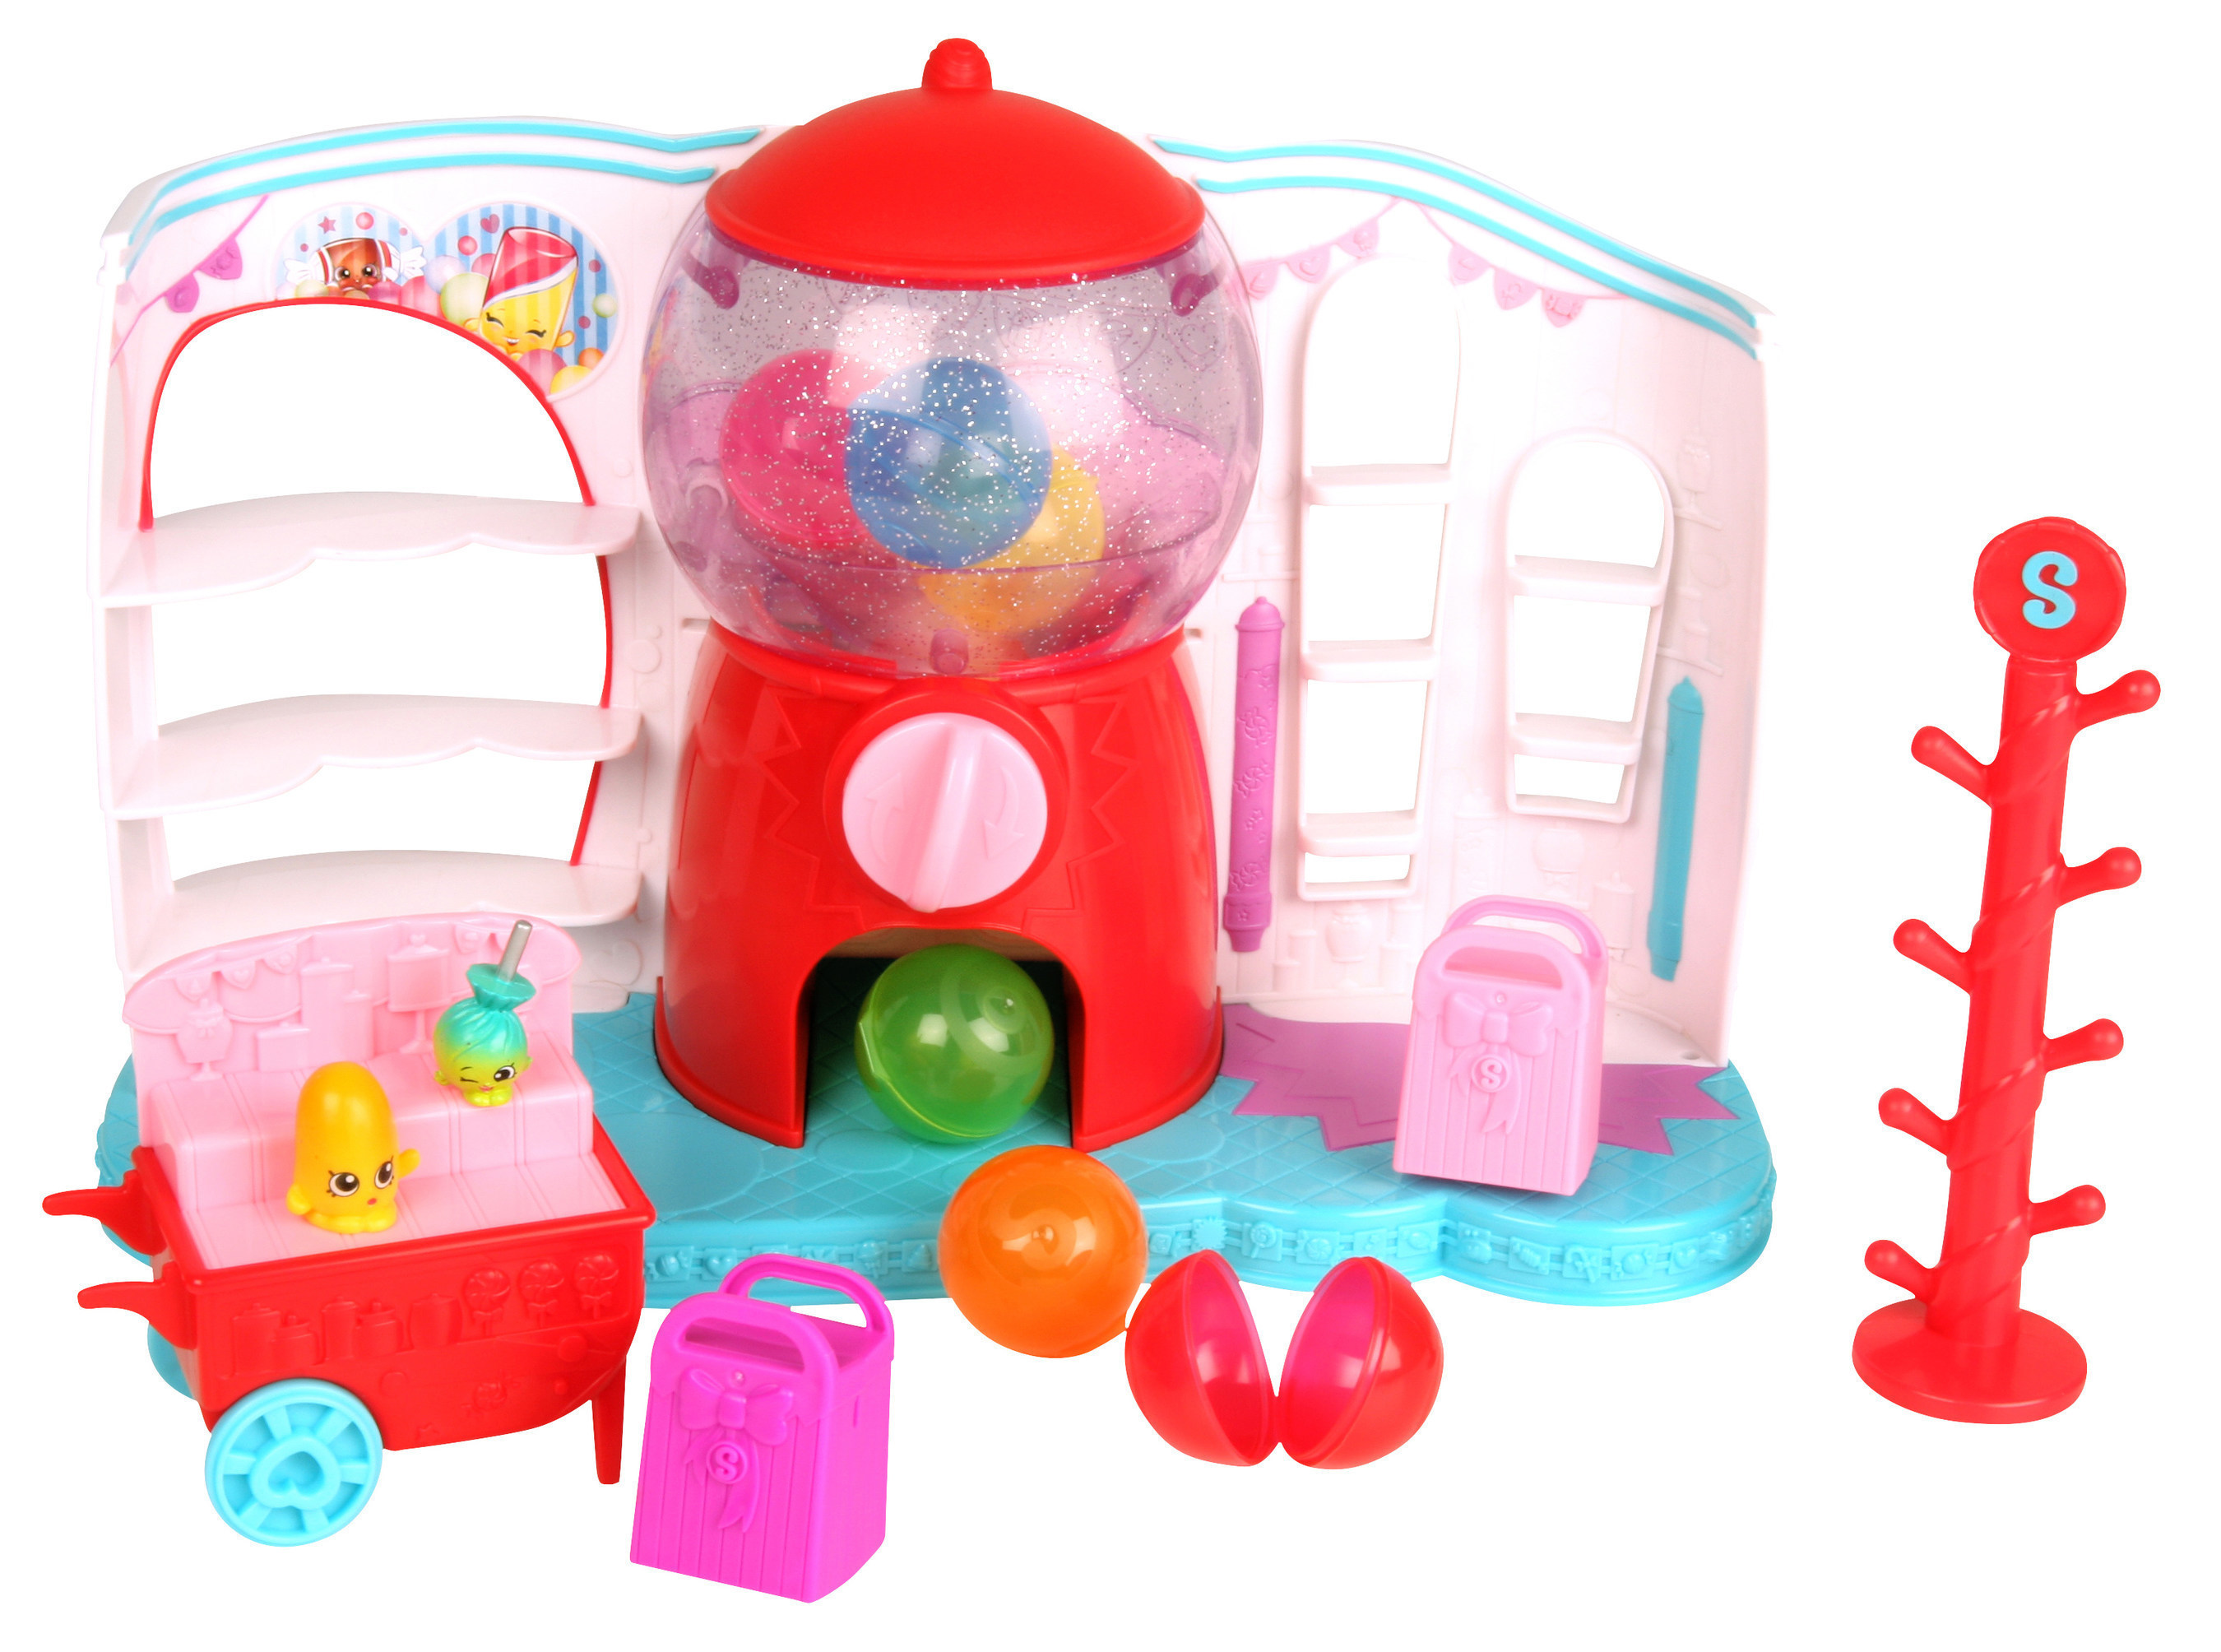 Shopkins, a fan-favorite collectible line from Moose Toys, becomes a little sweeter this spring with the new Shopkins Sweet Spot playset.